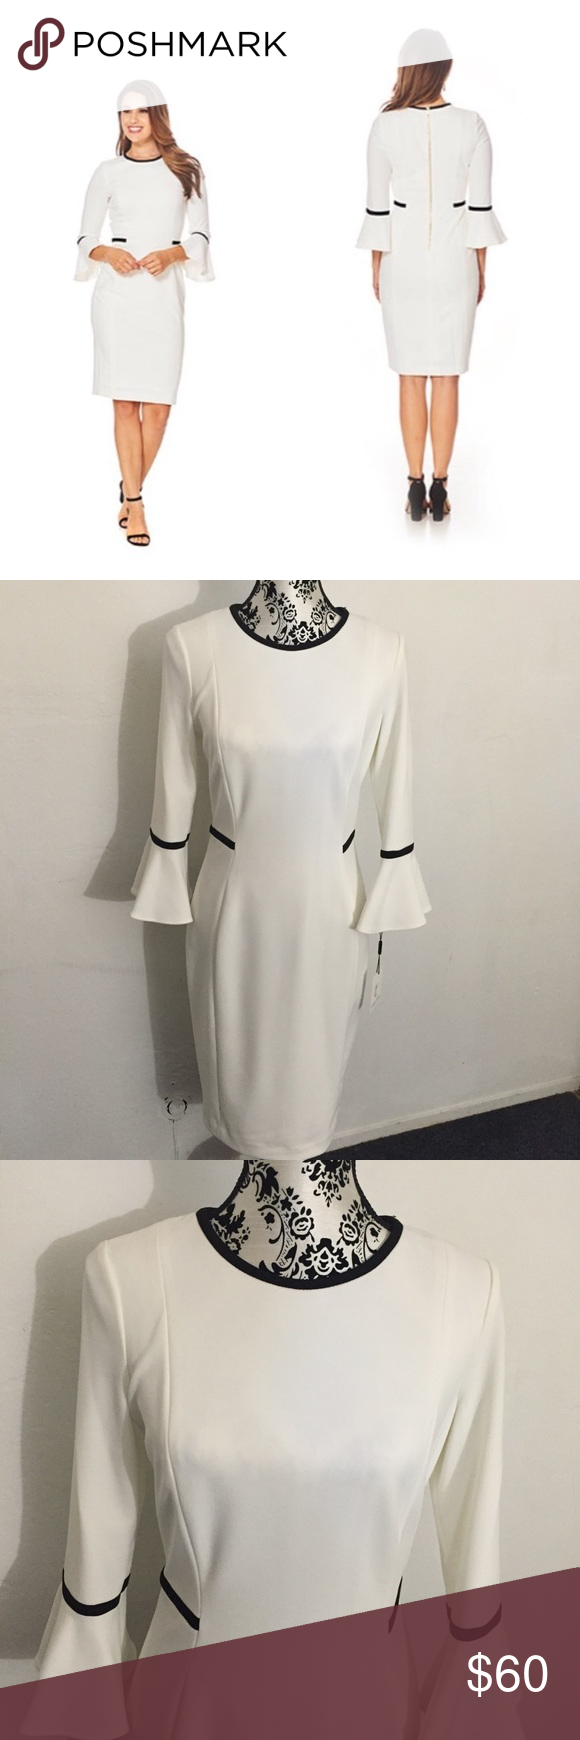 c4448160 🆕Calvin Klein Two Tone Bell Sleeve Dress White dress with black piping,  3/4 bell sleeves. Soft stretch fabric with piped detailing, round neck, ...